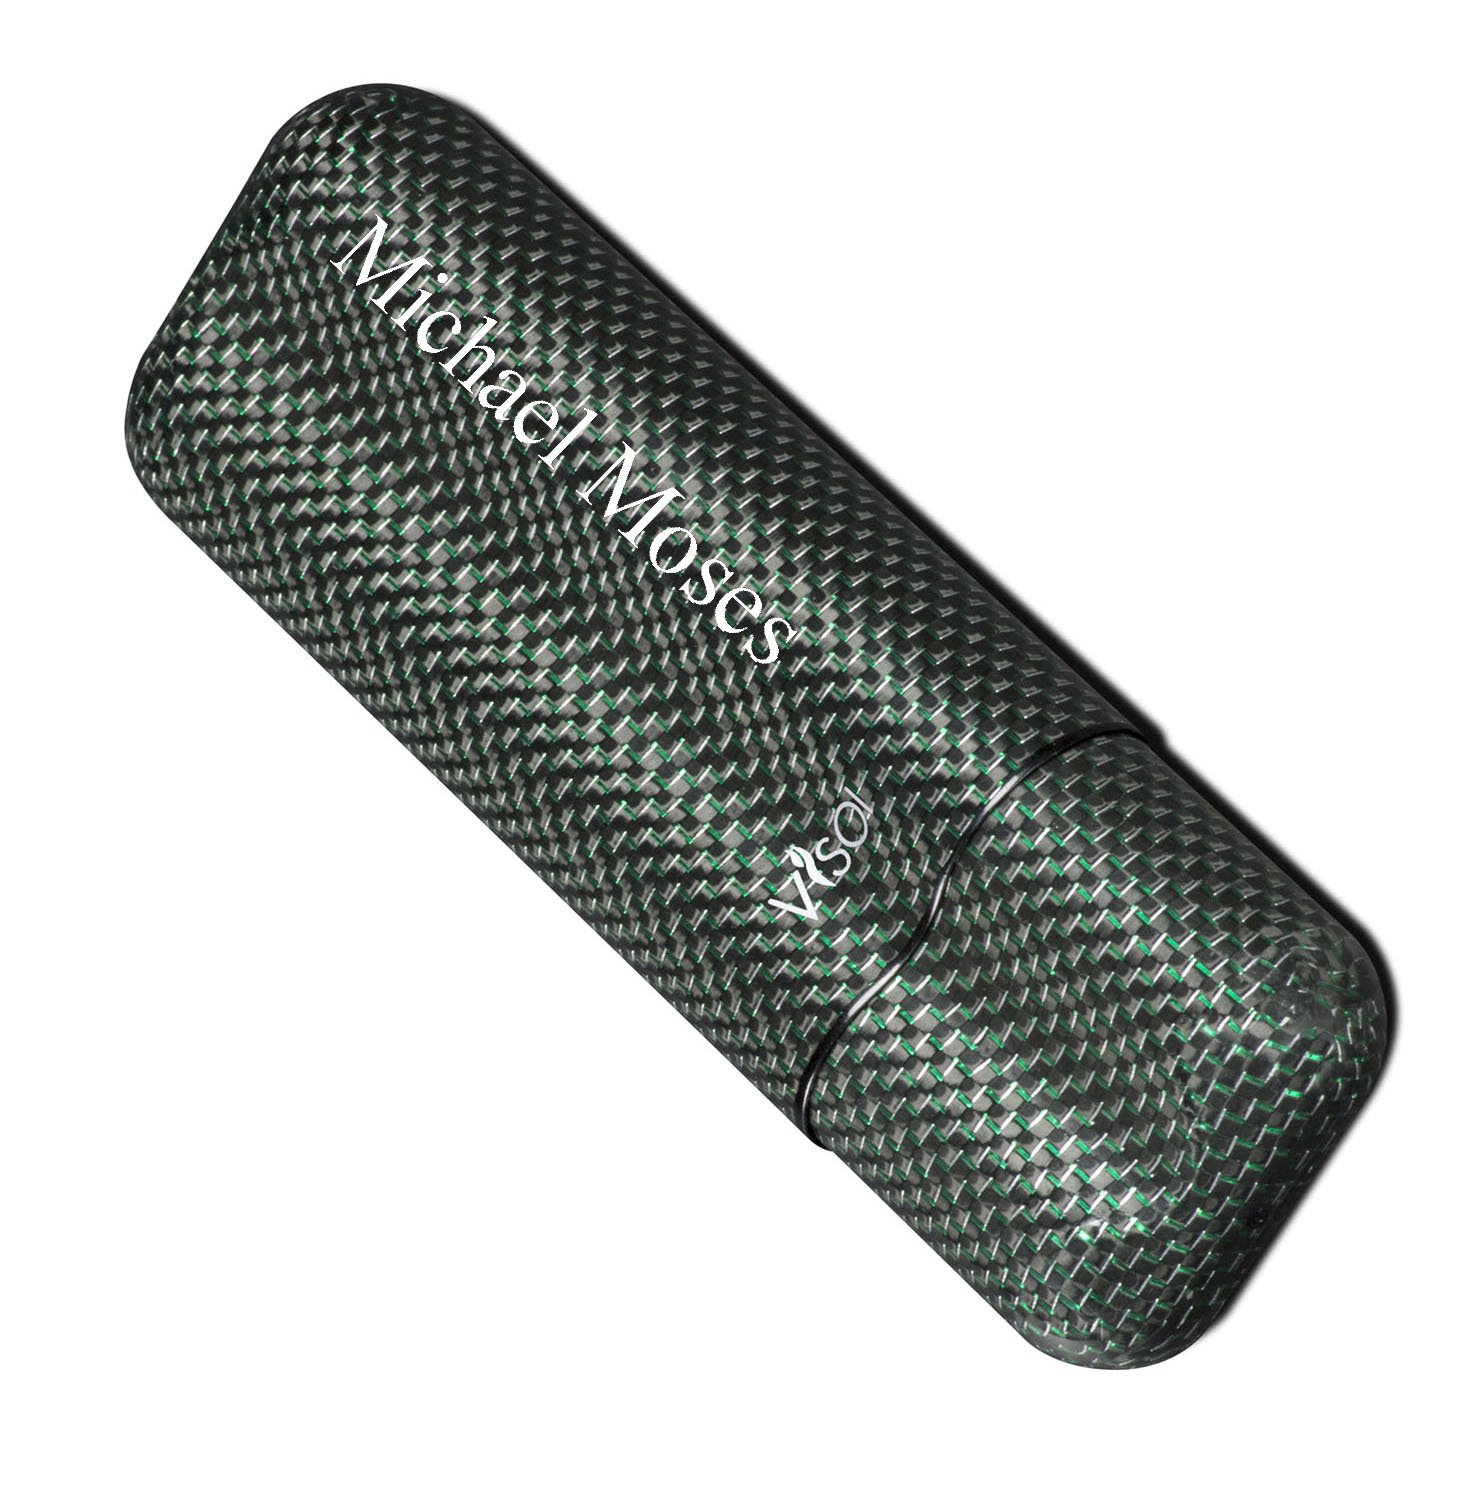 Personalized Visol Two Finger Titanium Carbon Fiber Cigar Case with Free Printing by Visol